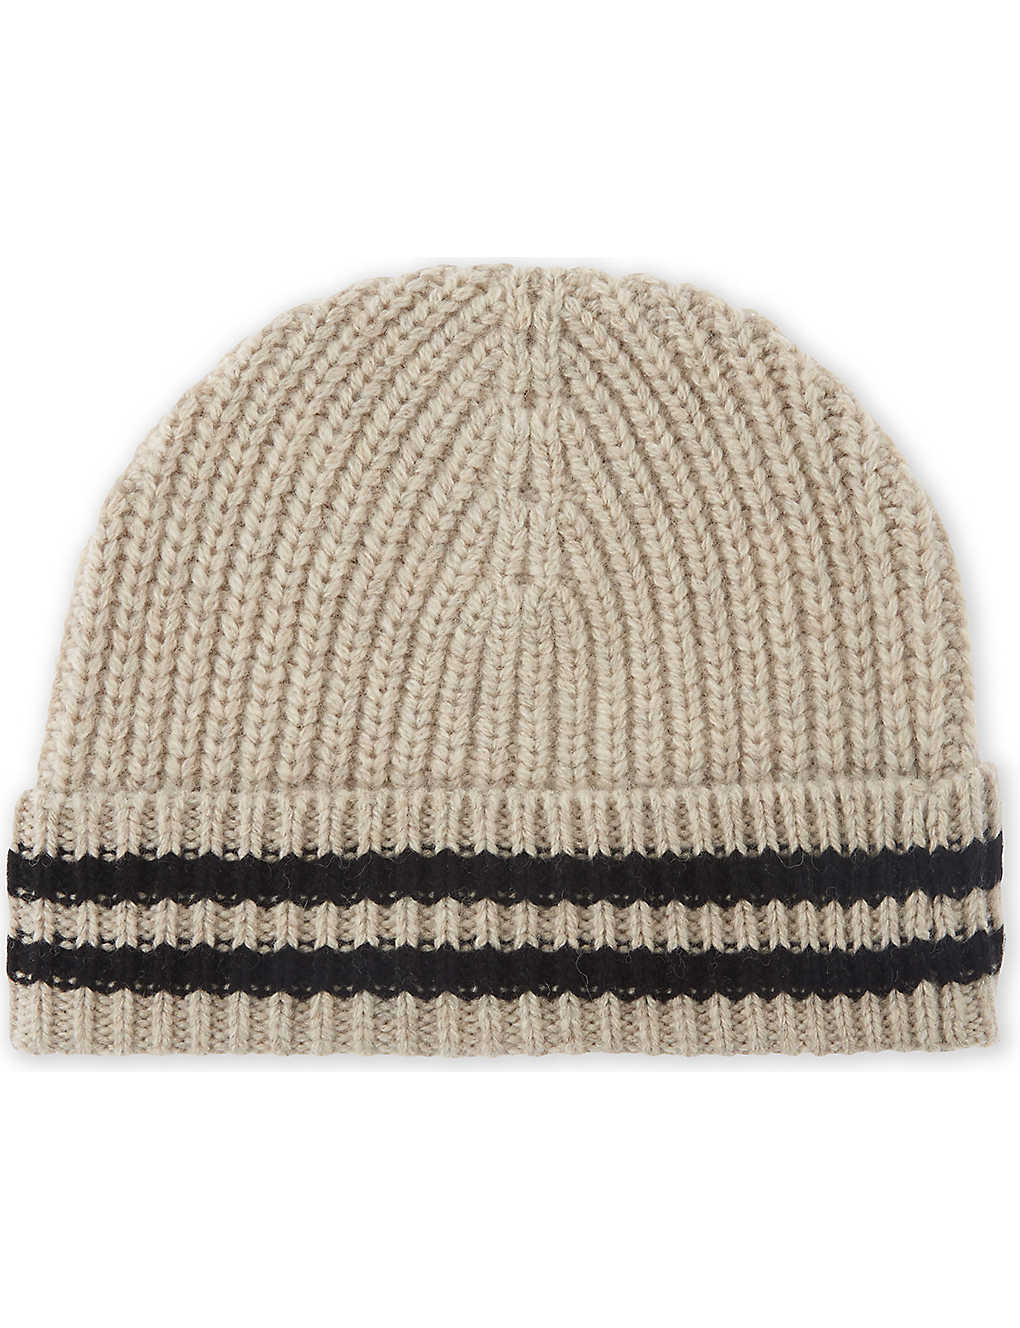 ZADIG VOLTAIRE - Malo ribbed wool beanie hat  a45040a4eaa